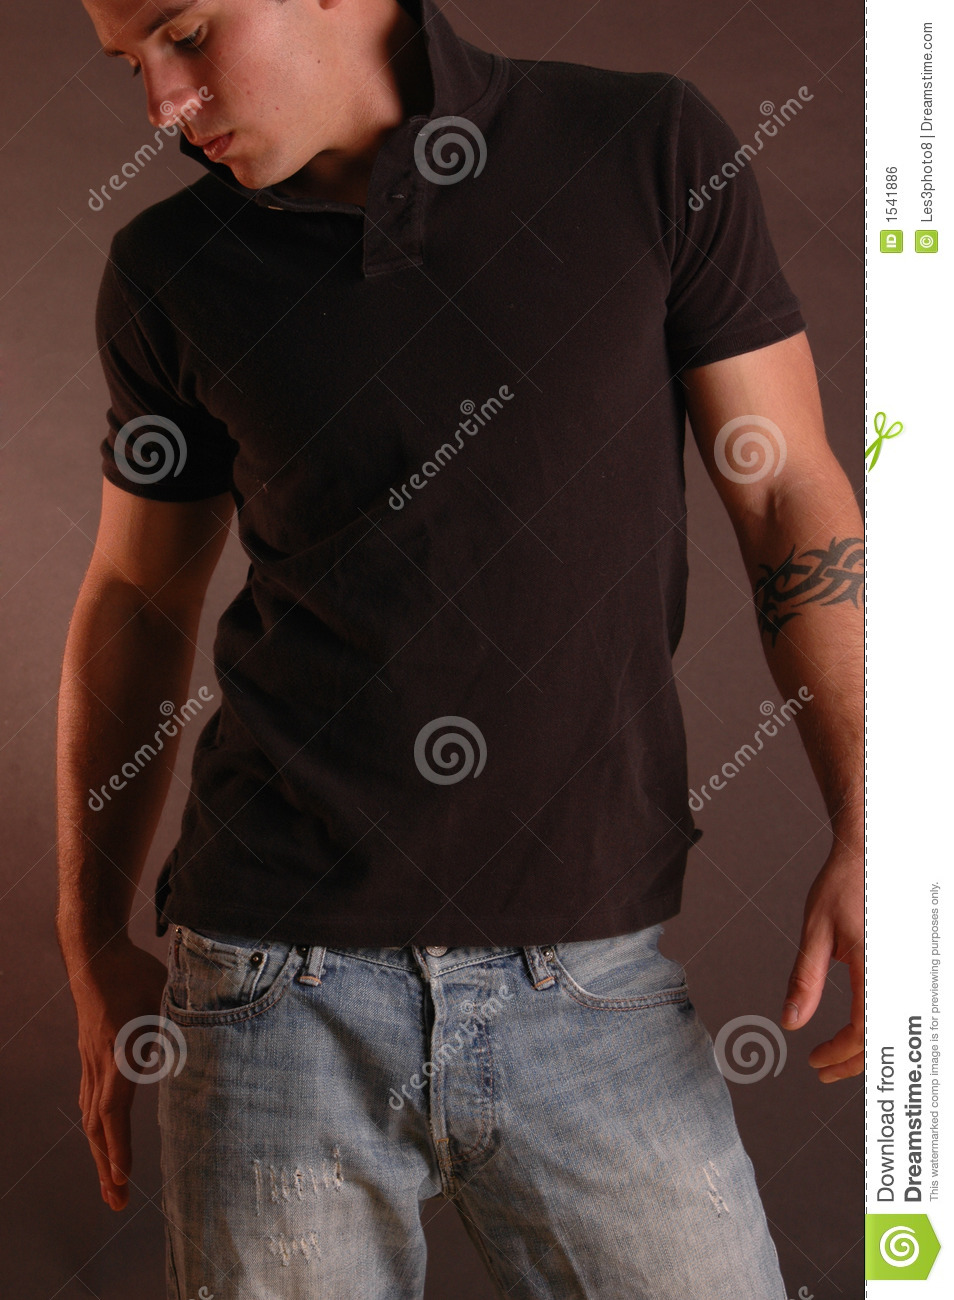 Polo shirt and jeans 2